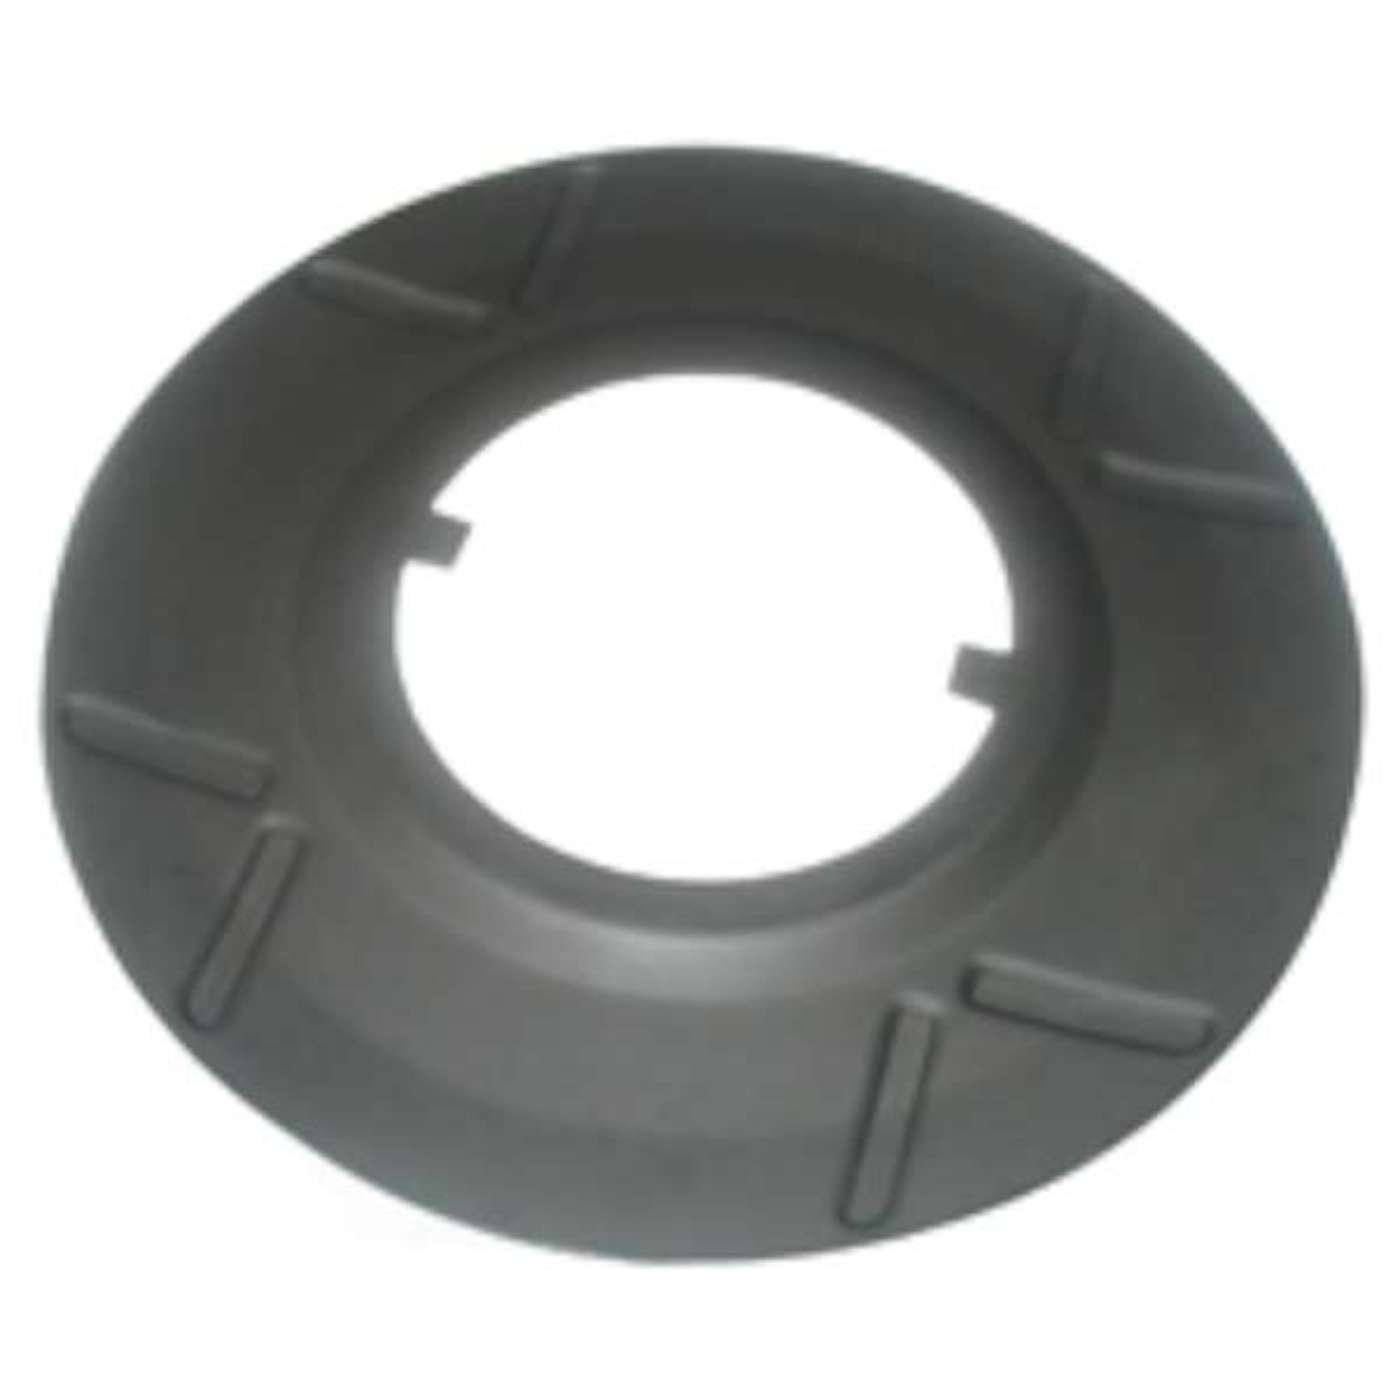 3D7438 RING ASSEM fits Caterpillar CAT